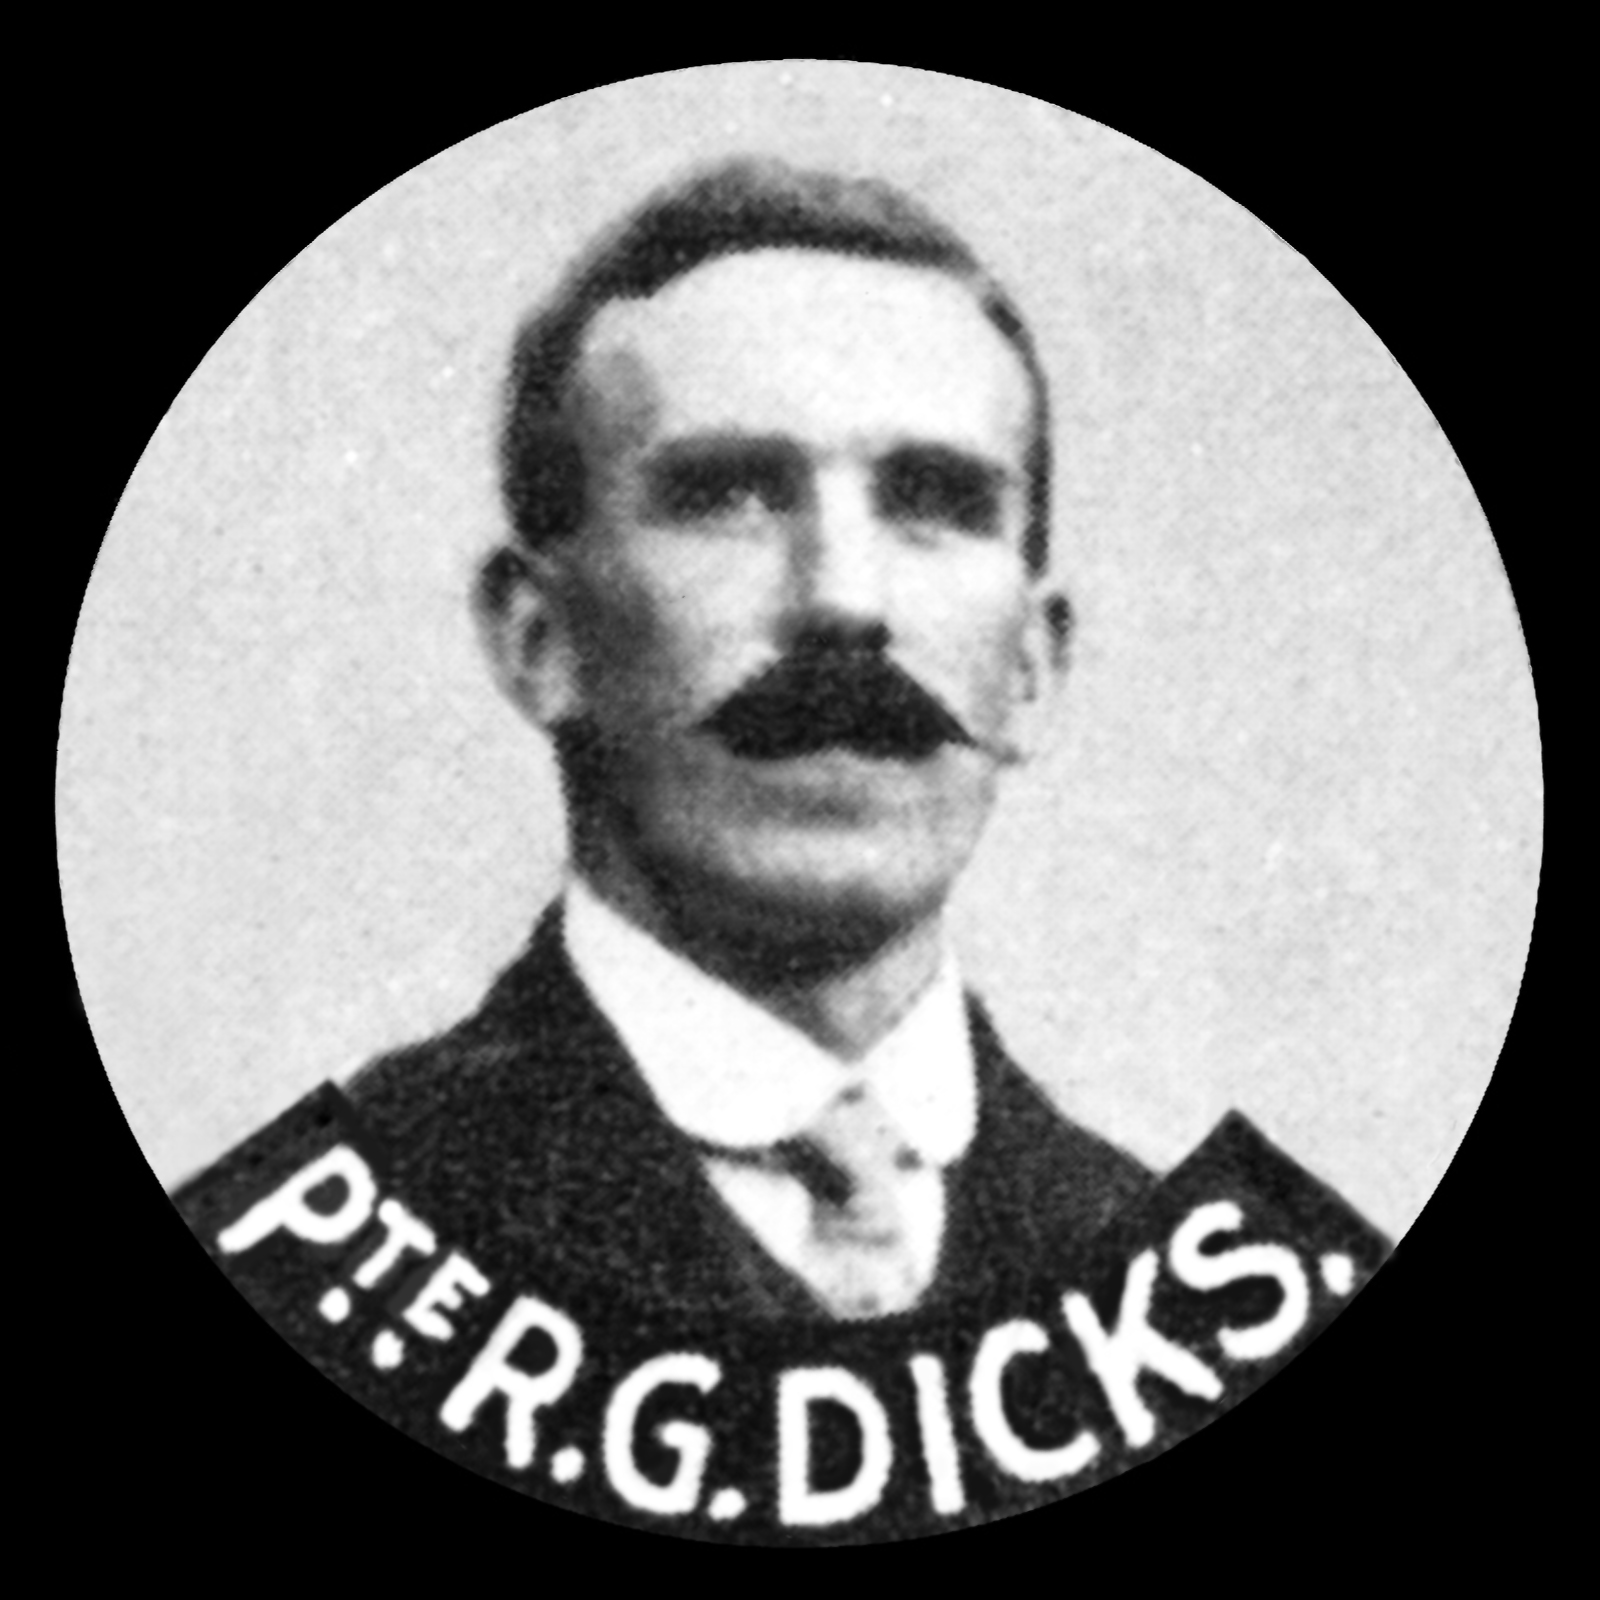 DICKS Robert George